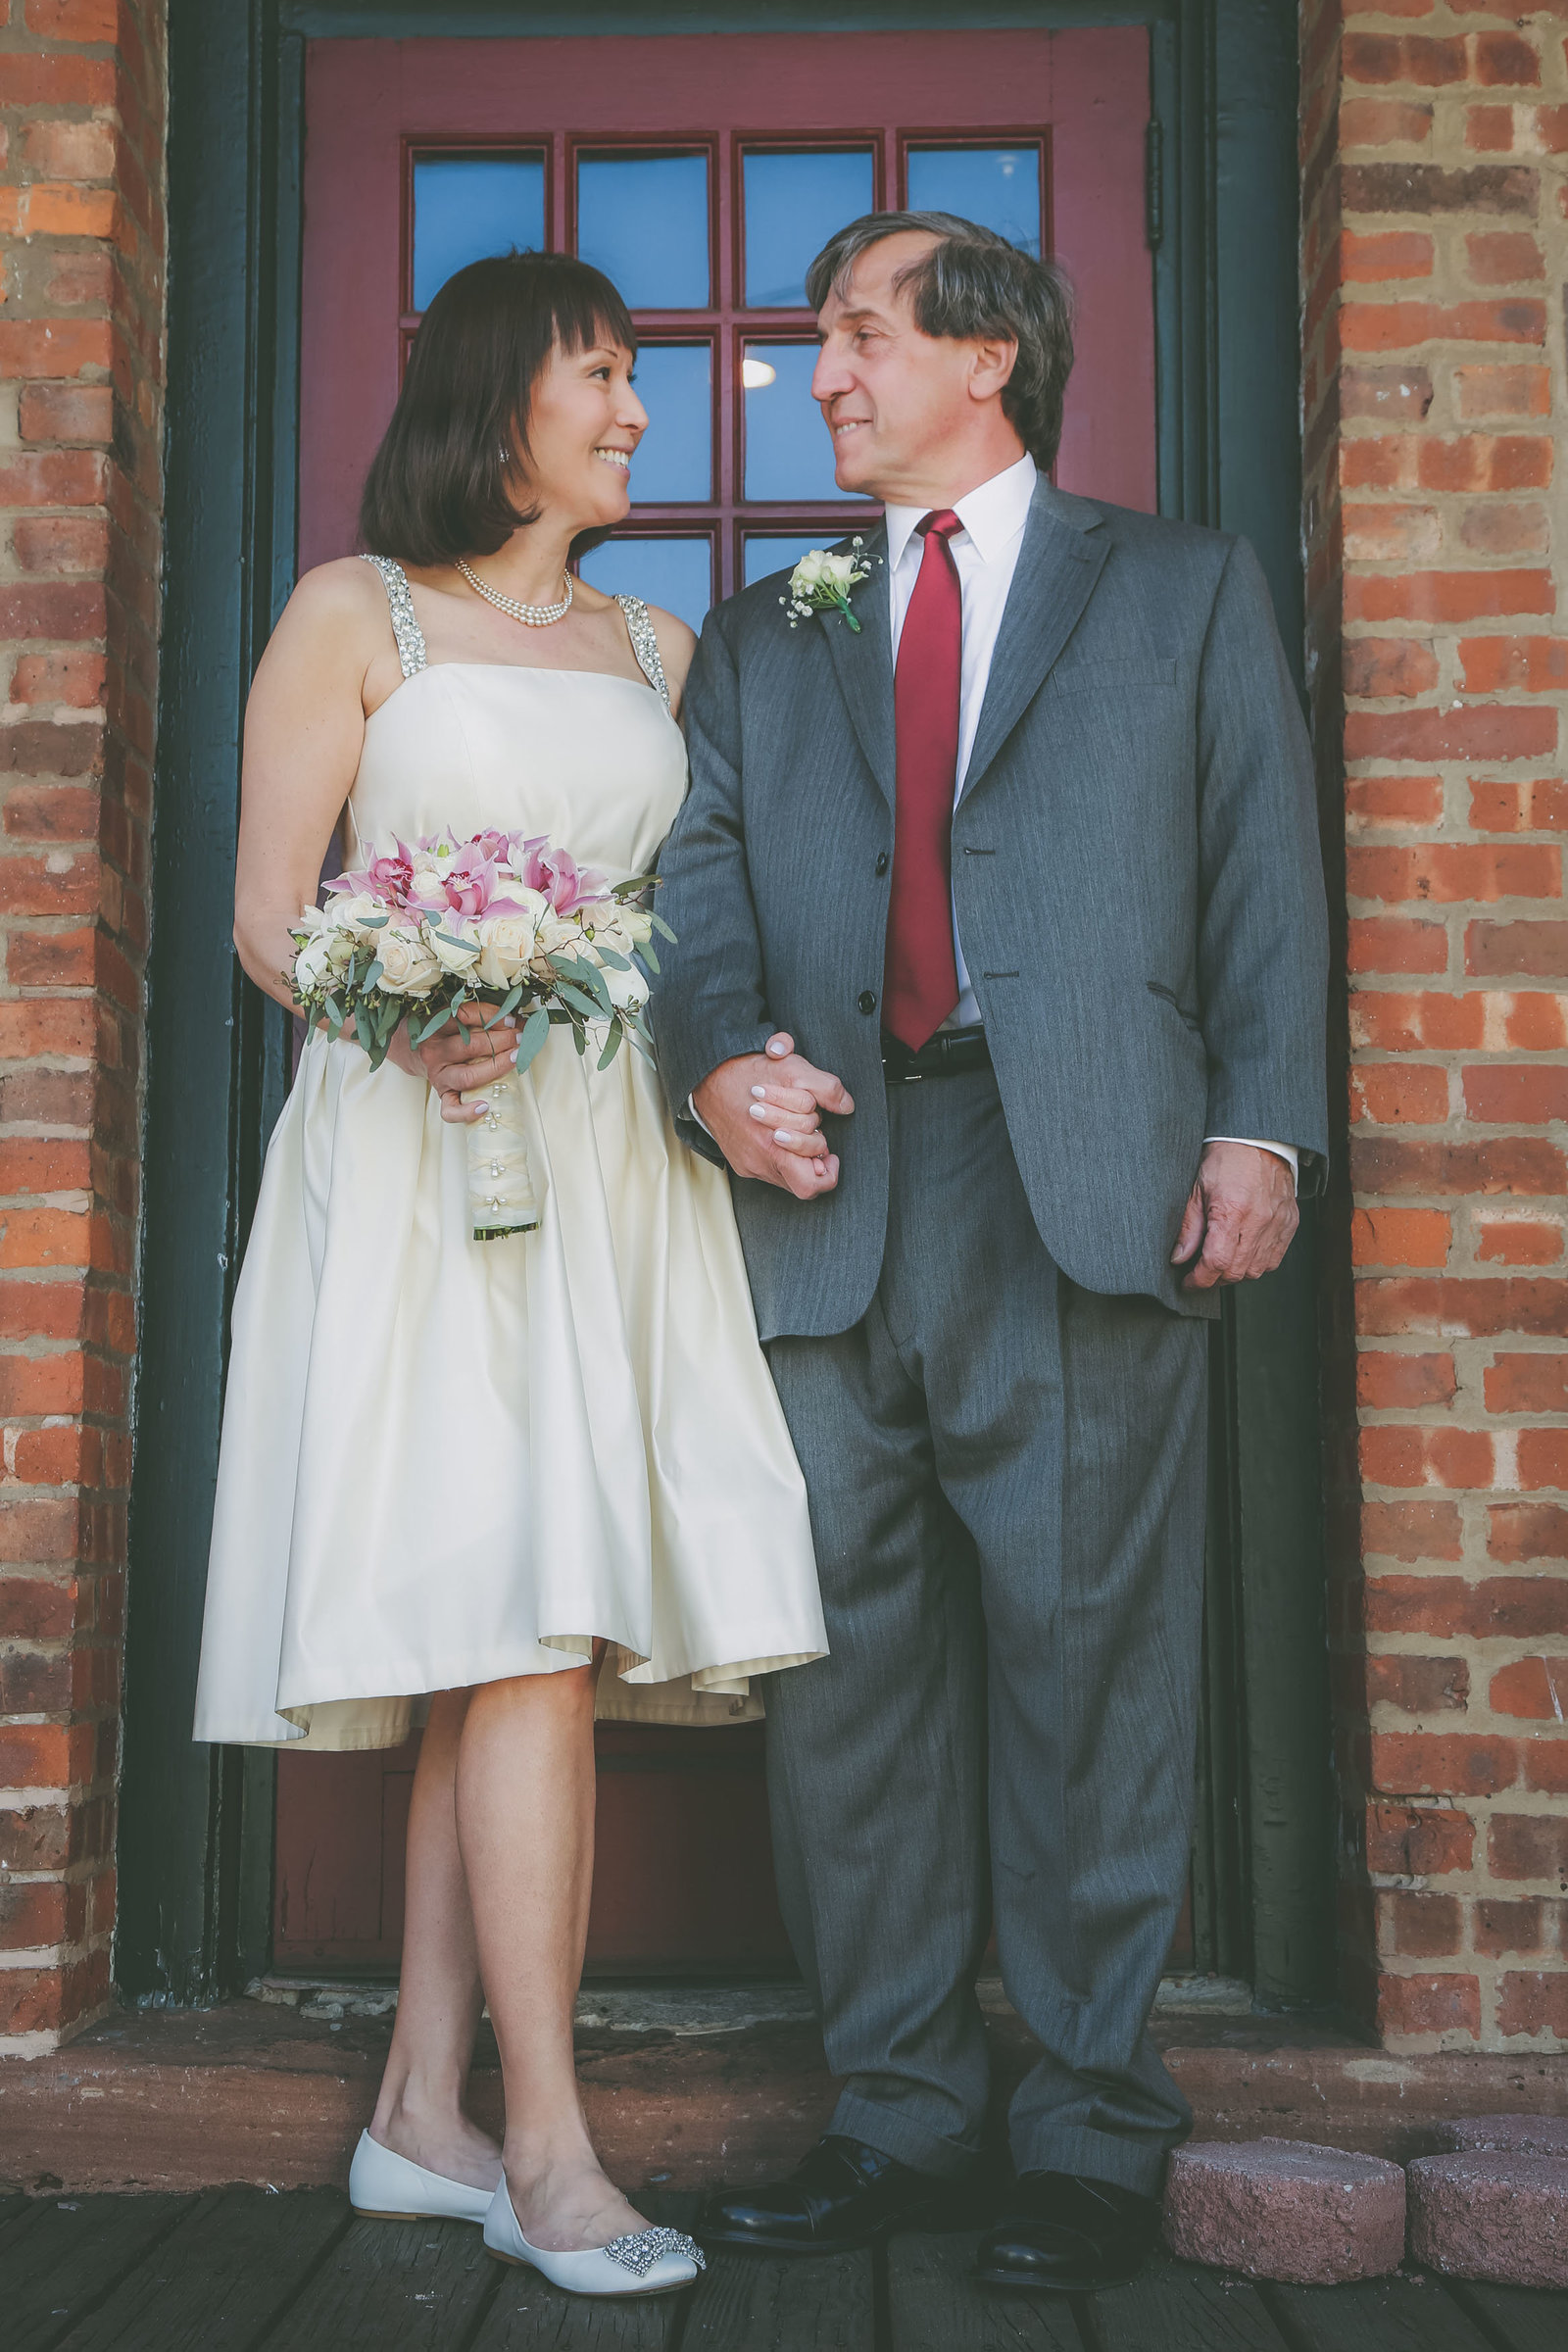 A New Jersey couple hold hands and look at each other against a doorway.